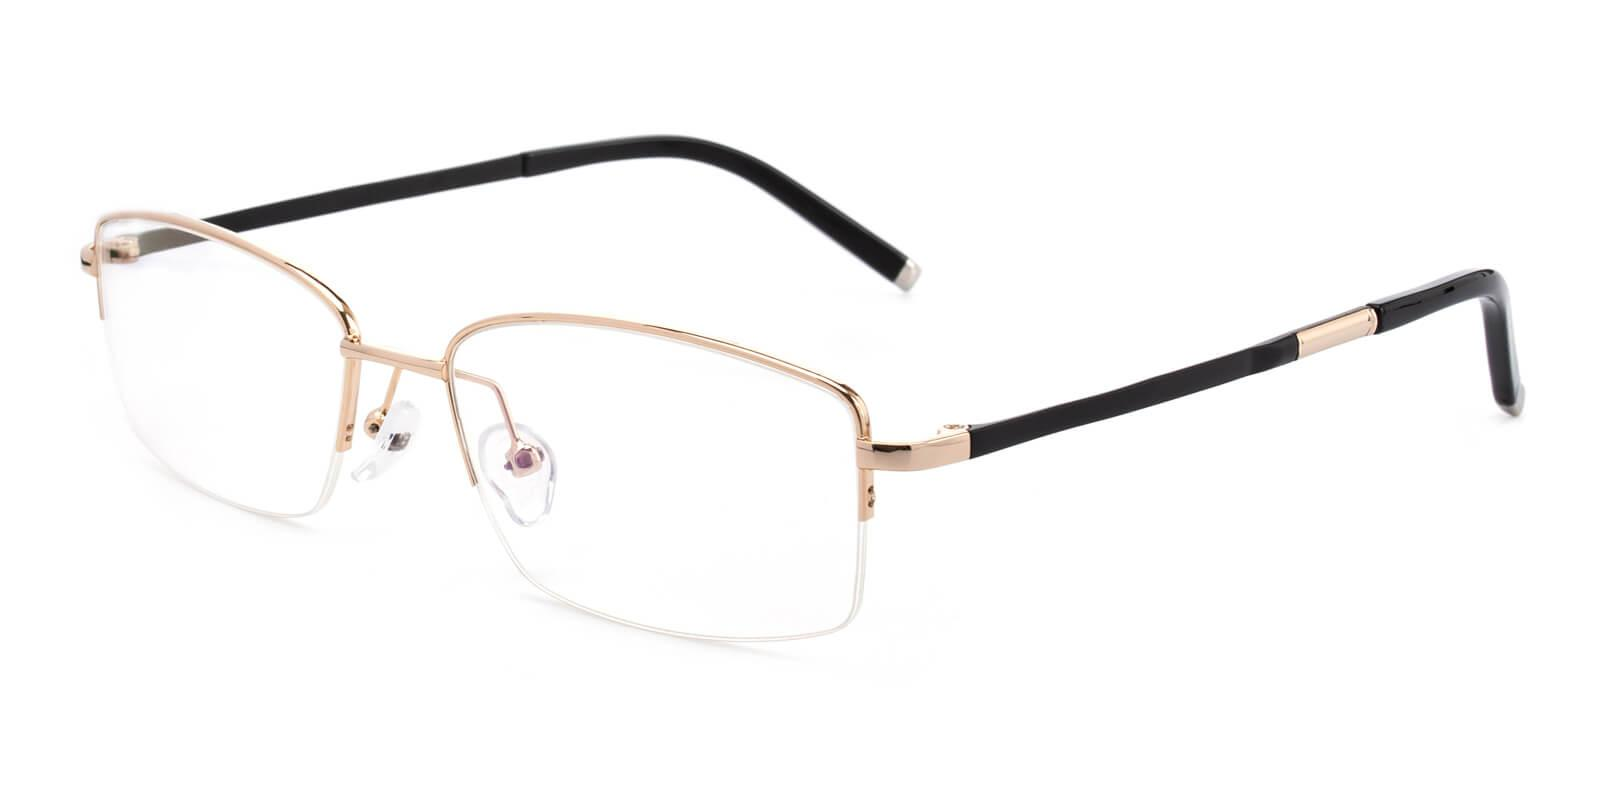 Revelino-Gold-Rectangle-Titanium-Eyeglasses-additional1